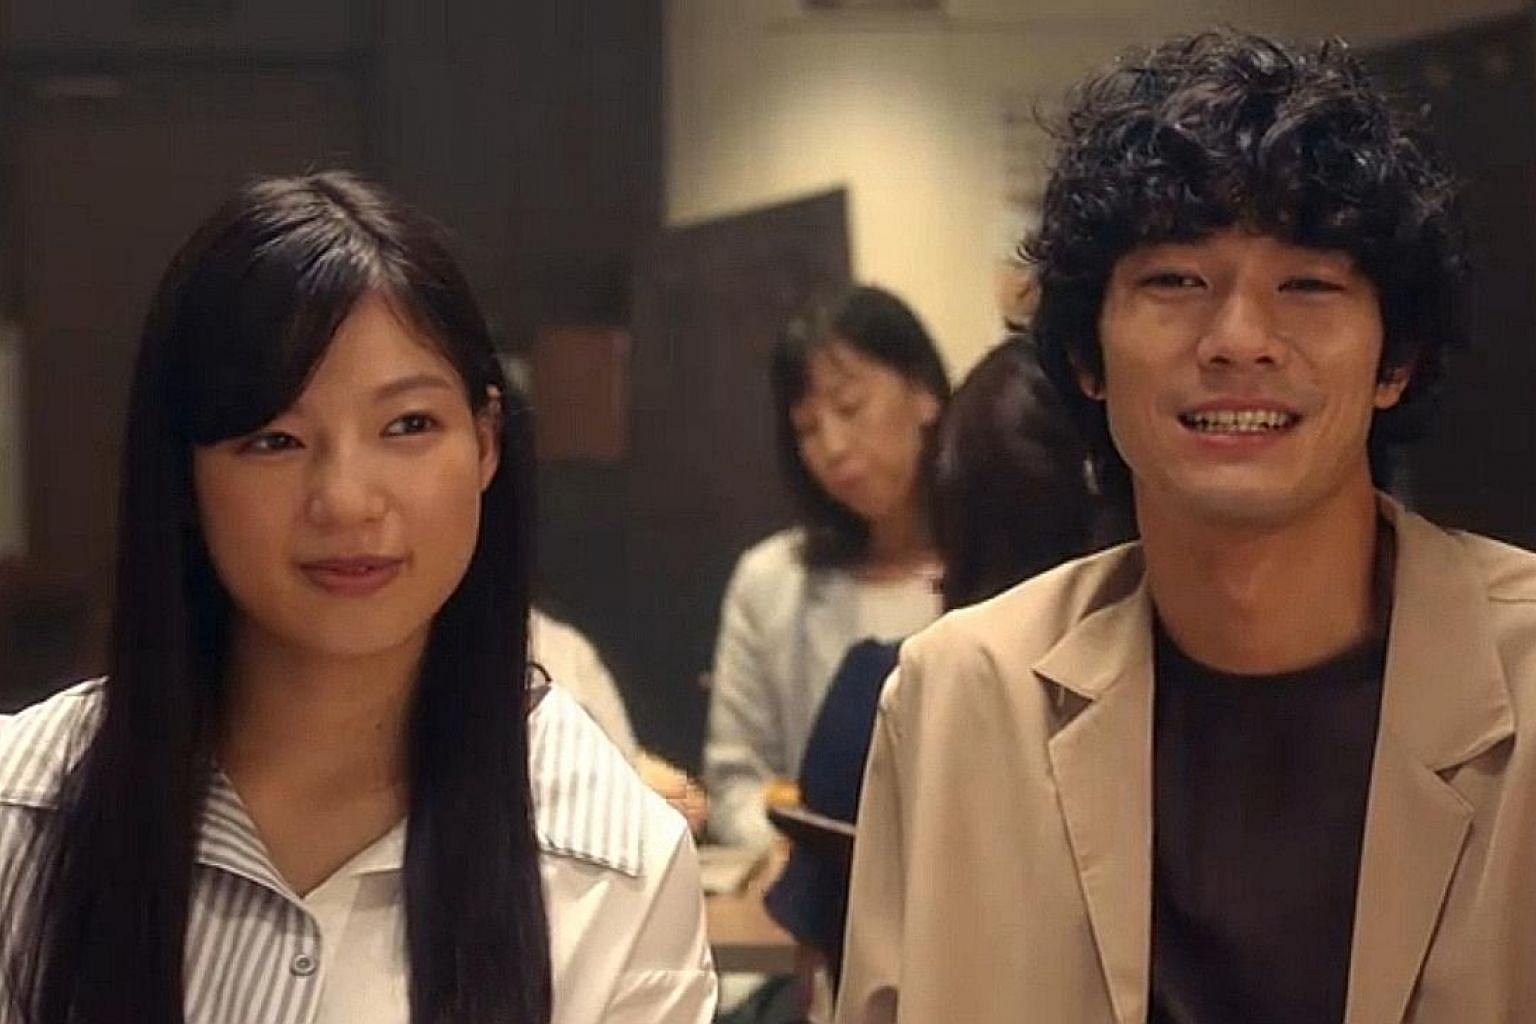 (Above) Shizuka Ishibashi shines as the standout character Rika in Tokyo Love Story 2020. (Left) Finding Her Voice, with its ensemble cast, celebrates the little things that make Hong Kong what it is.